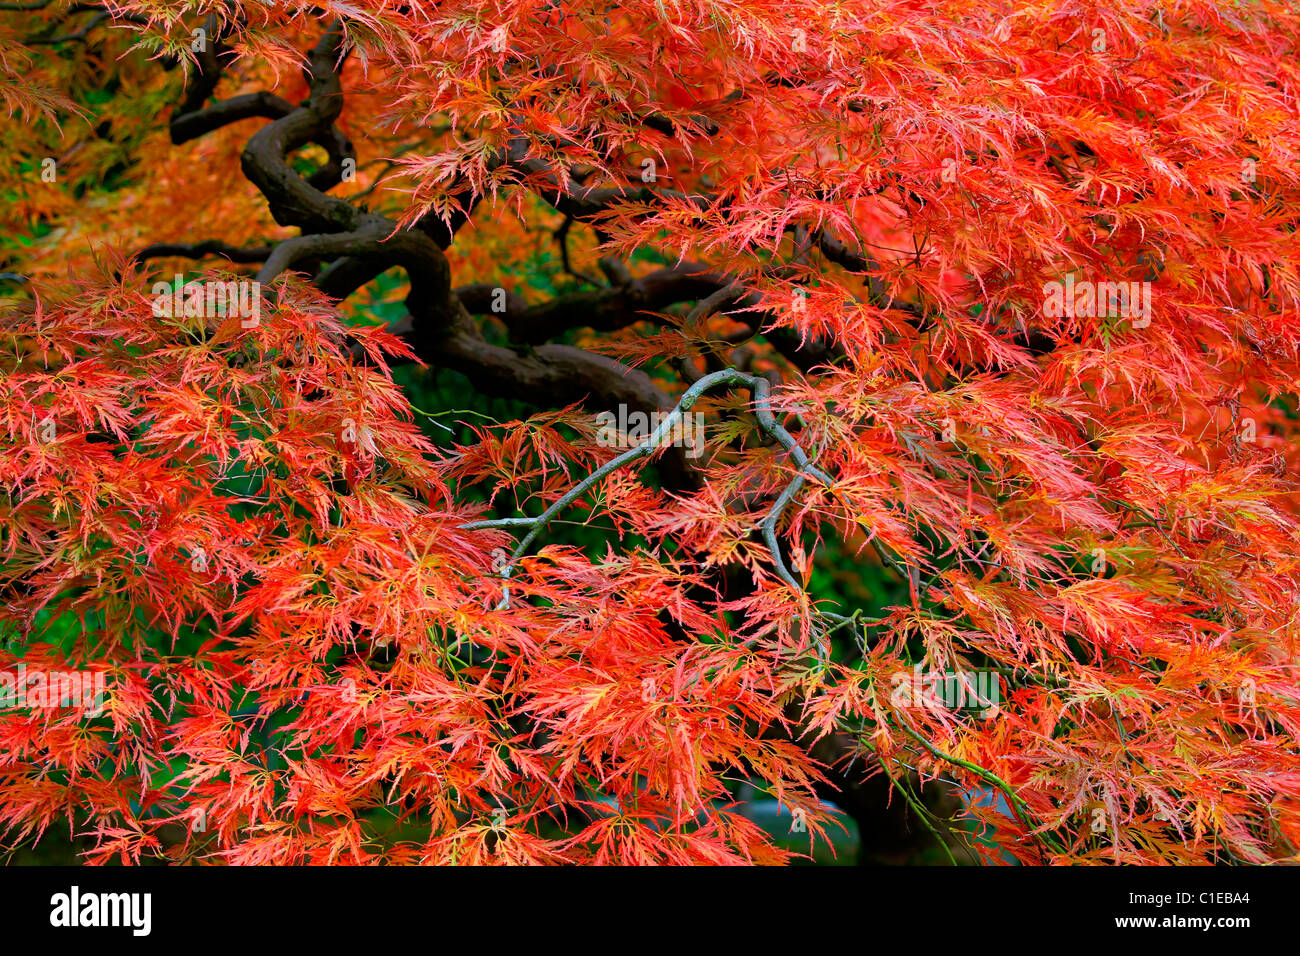 Old Japanese Red Lace Leaf Maple Tree in Autumn 3 Stock Photo